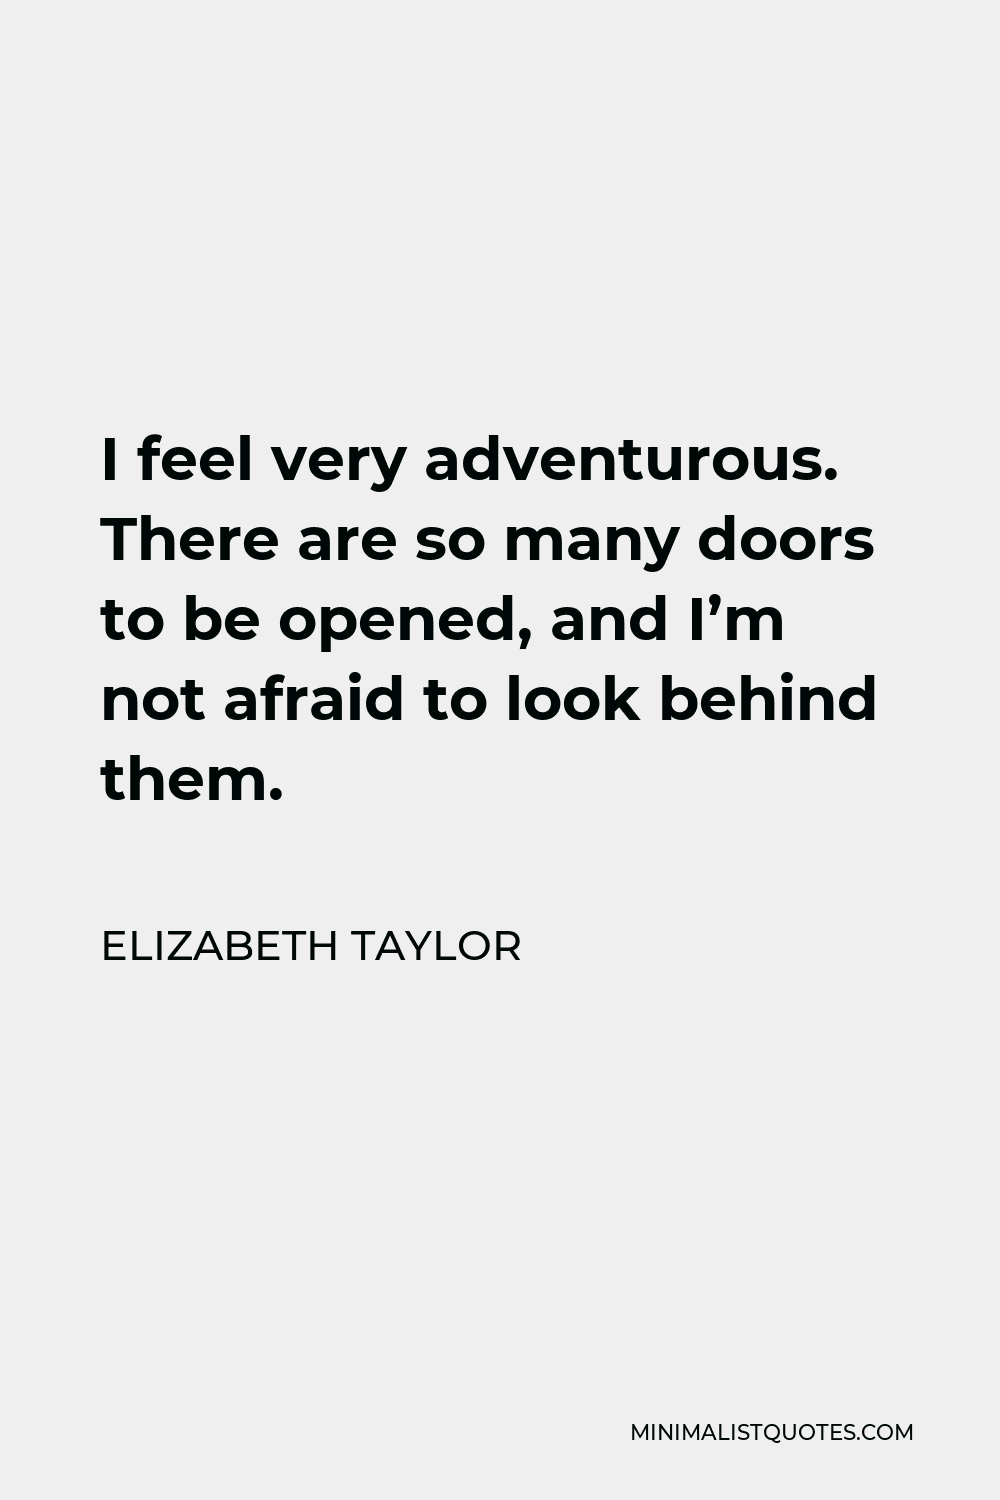 Elizabeth Taylor Quote - I feel very adventurous. There are so many doors to be opened, and I'm not afraid to look behind them.